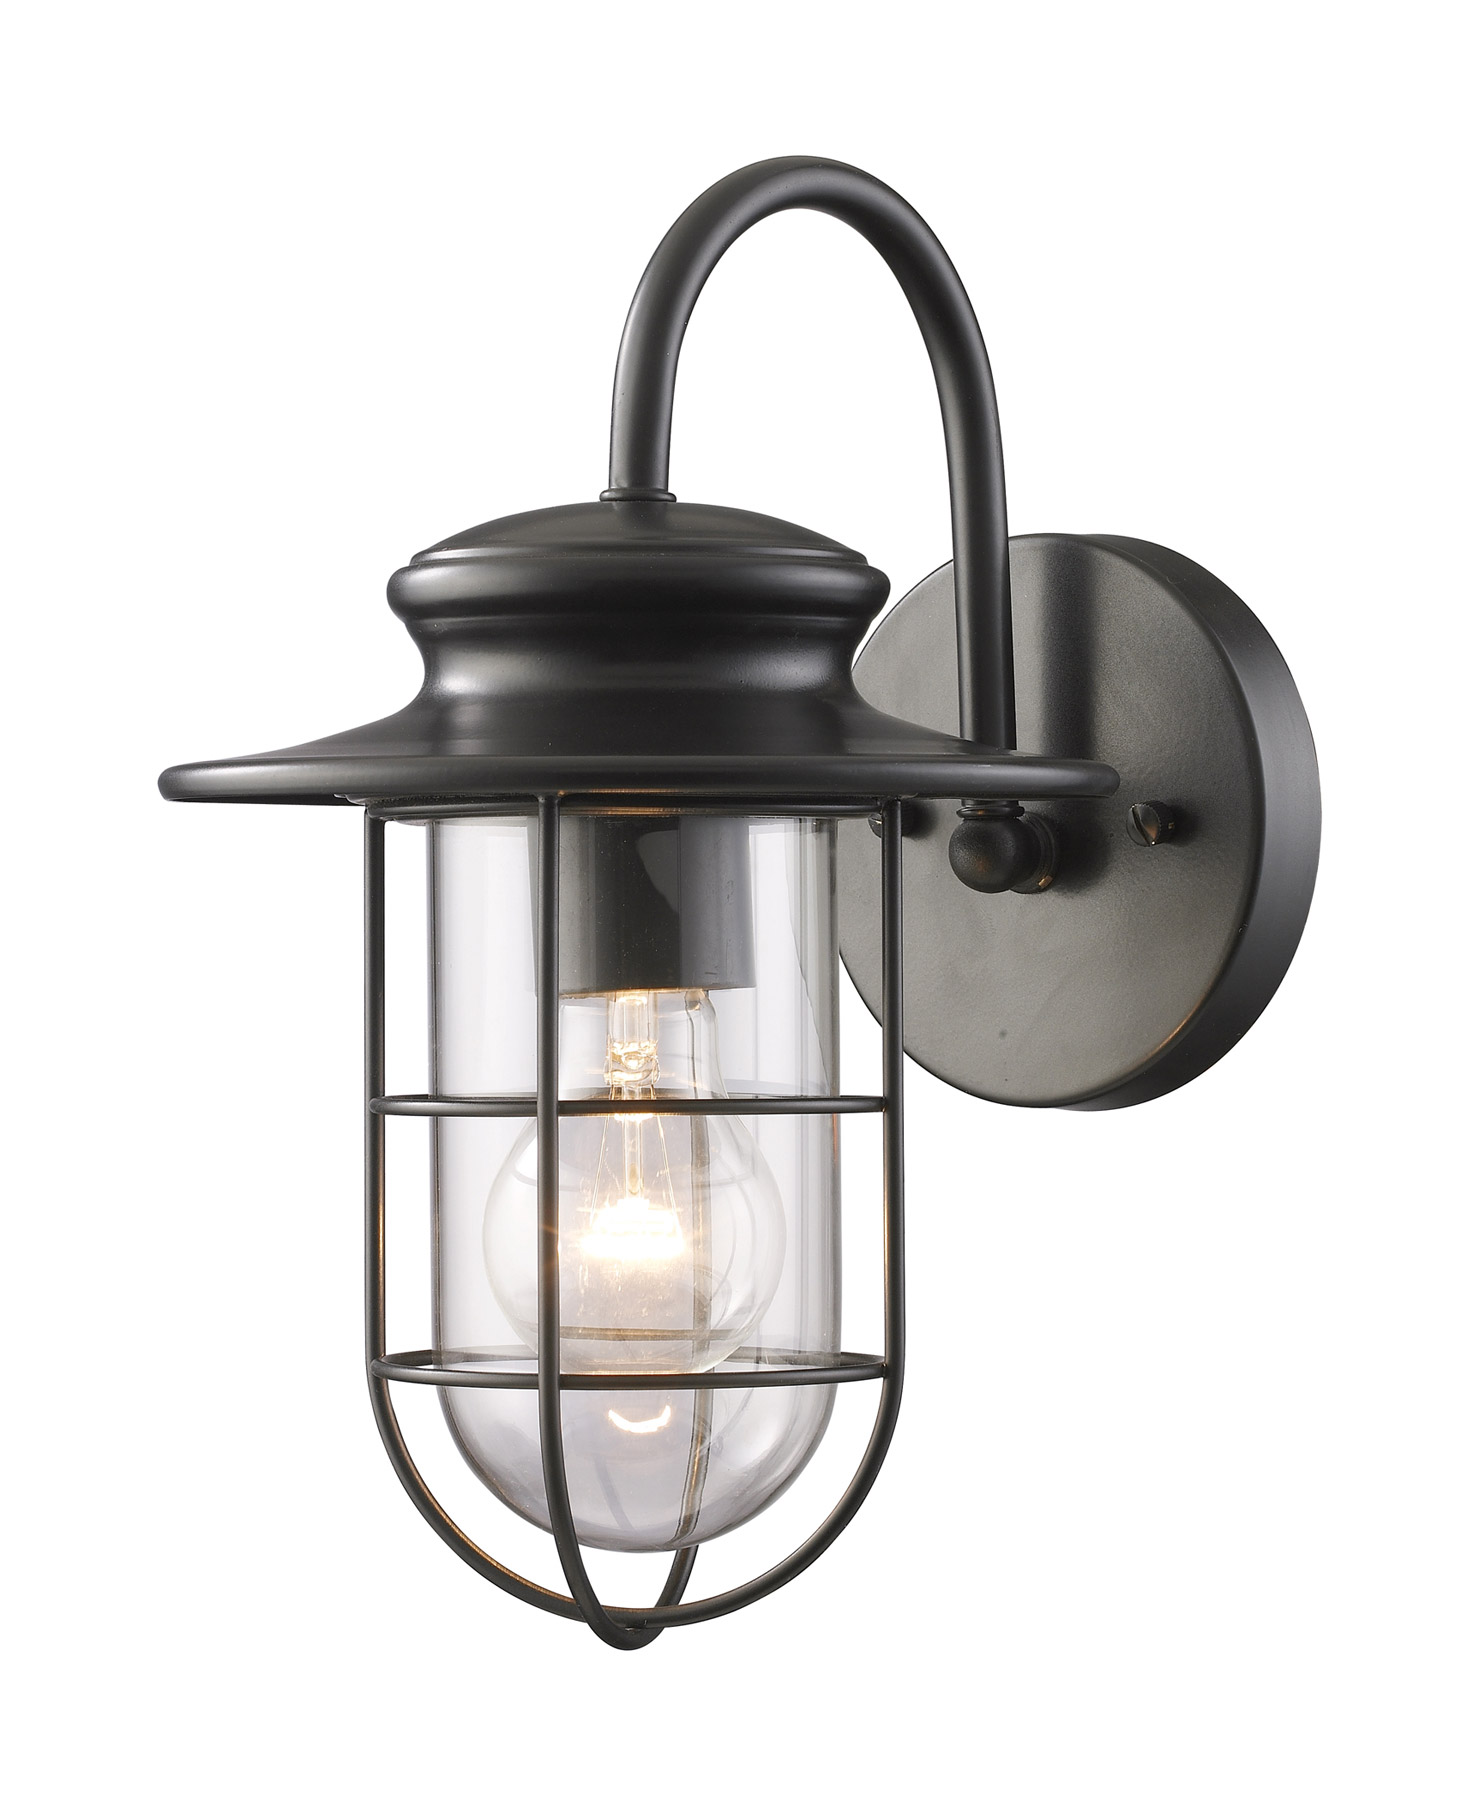 Elk Lighting 42284 1 Portside Outdoor Wall Mount Lantern